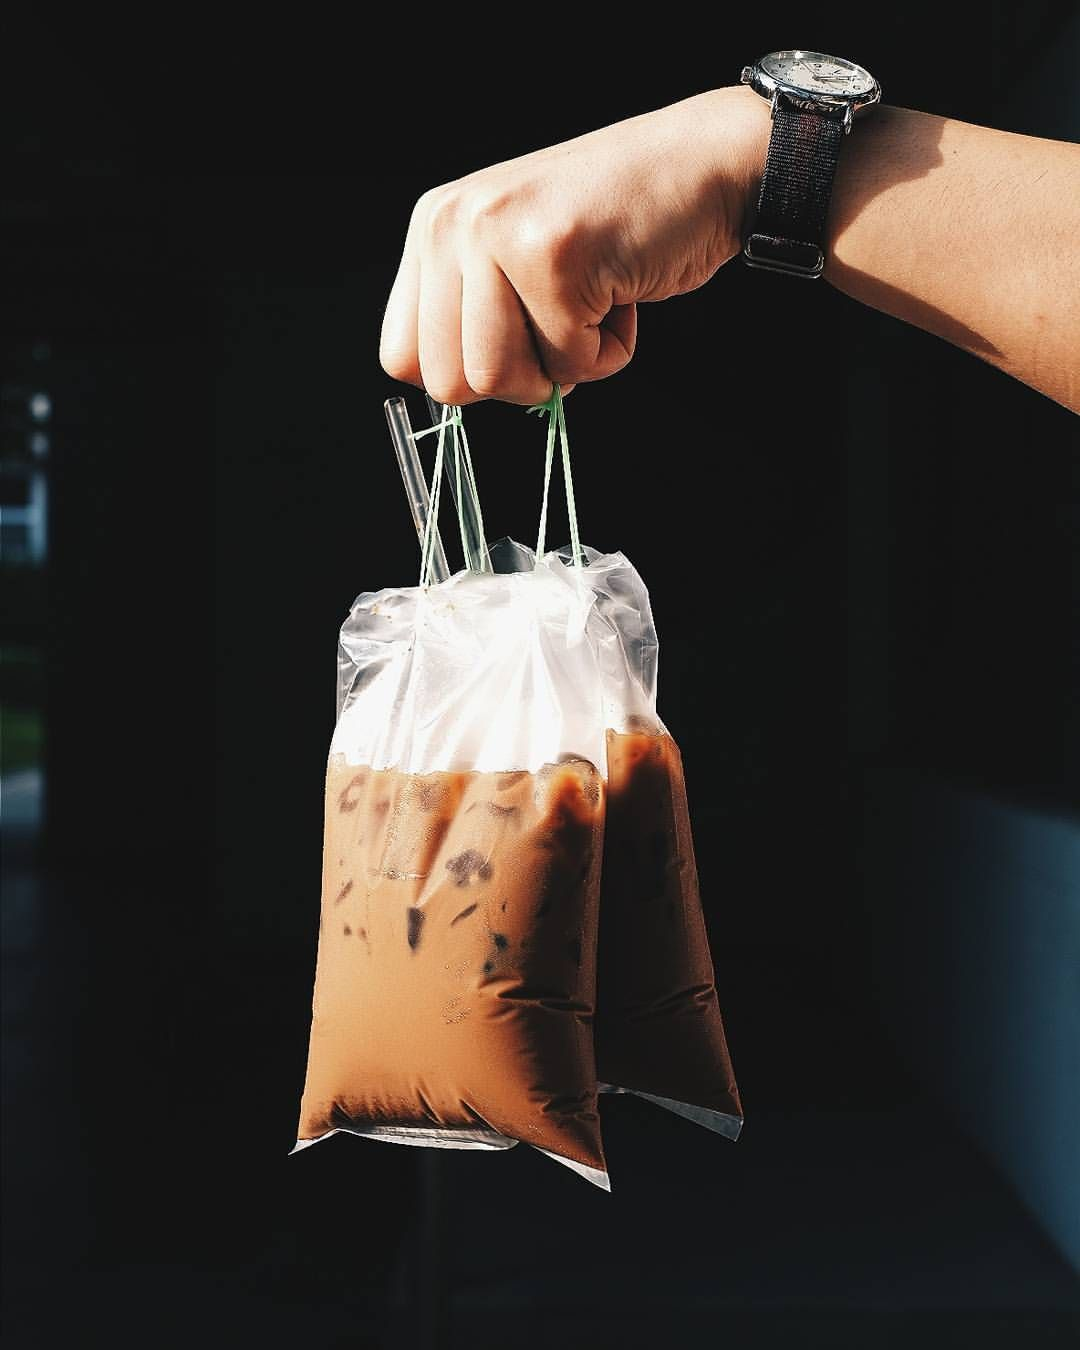 Can We Have Two Kopi Peng Takeaway Uncle Most Missed Drink In Singapore Simple Ice Robusta Coffee Brewed In Socks With Con Resep Minuman Kemasan Produk Kopi